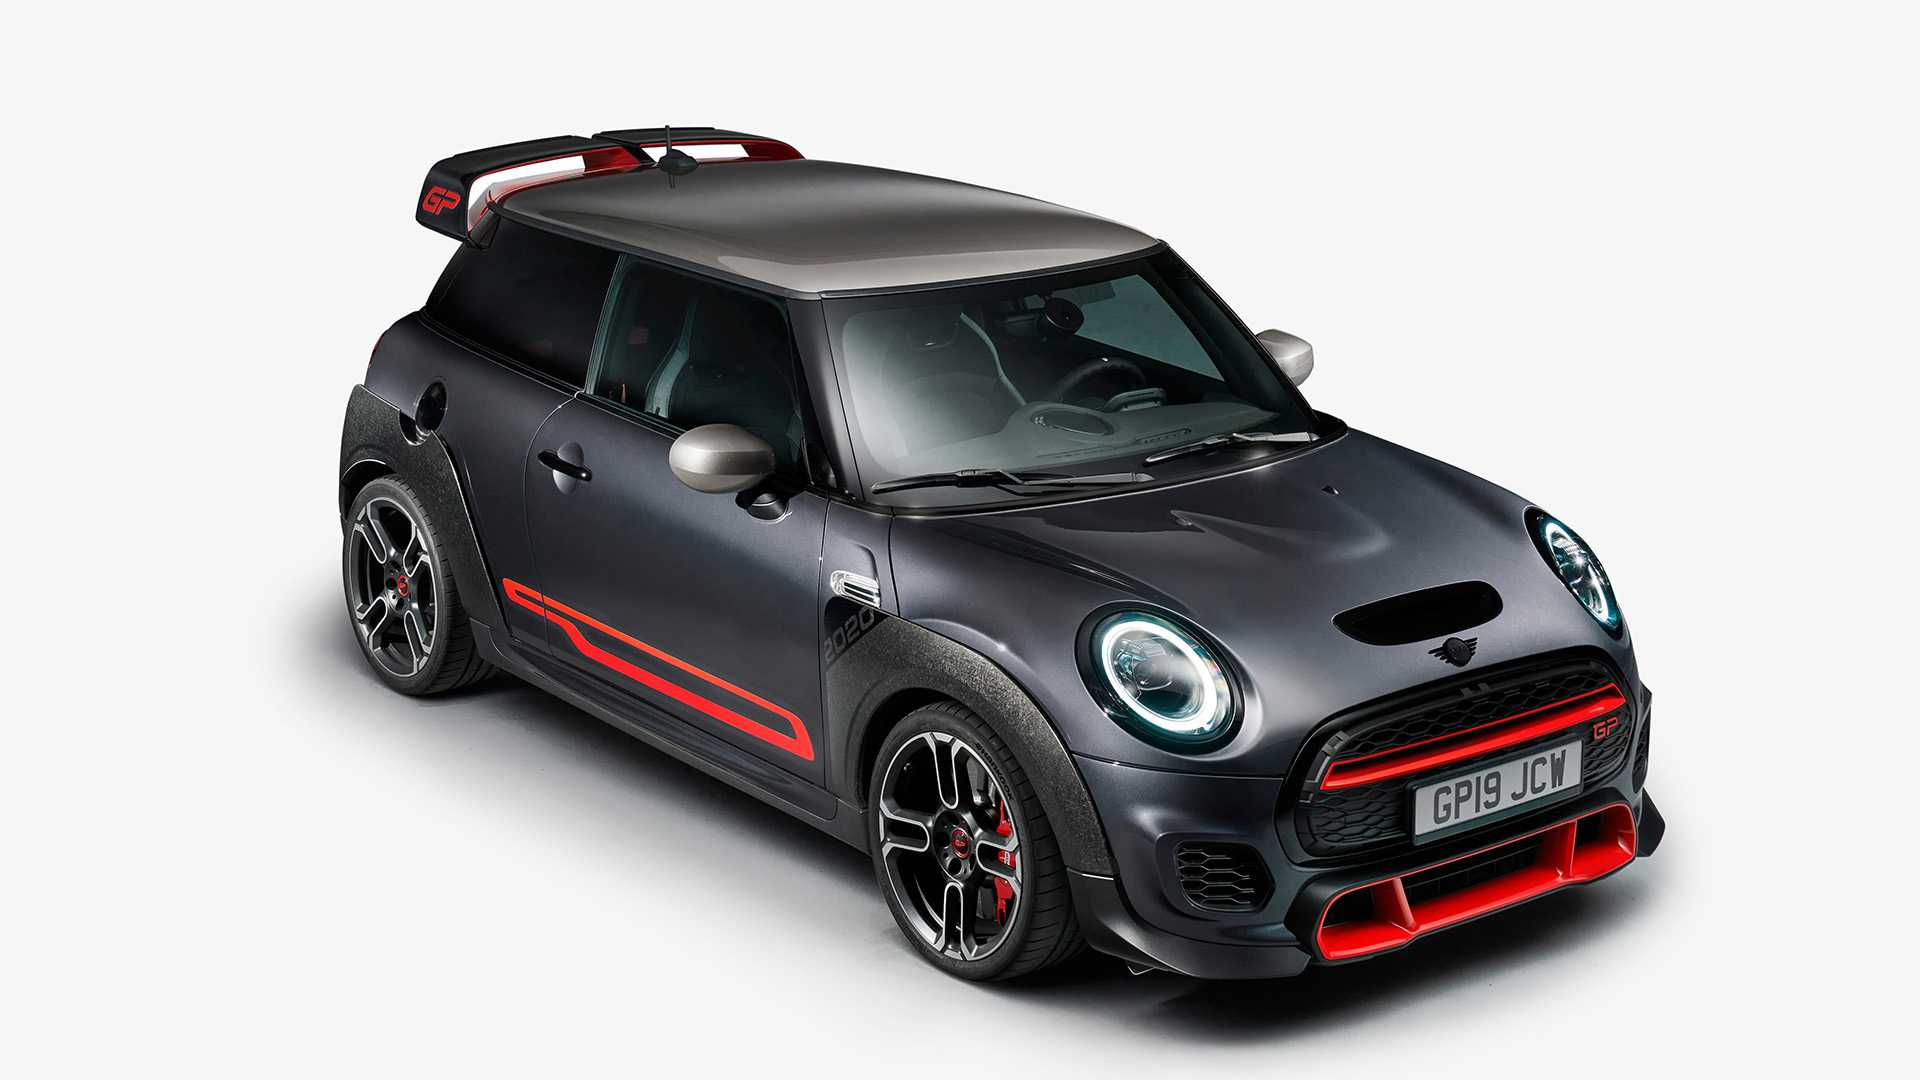 mini-john-cooper-works-gp-2020-14